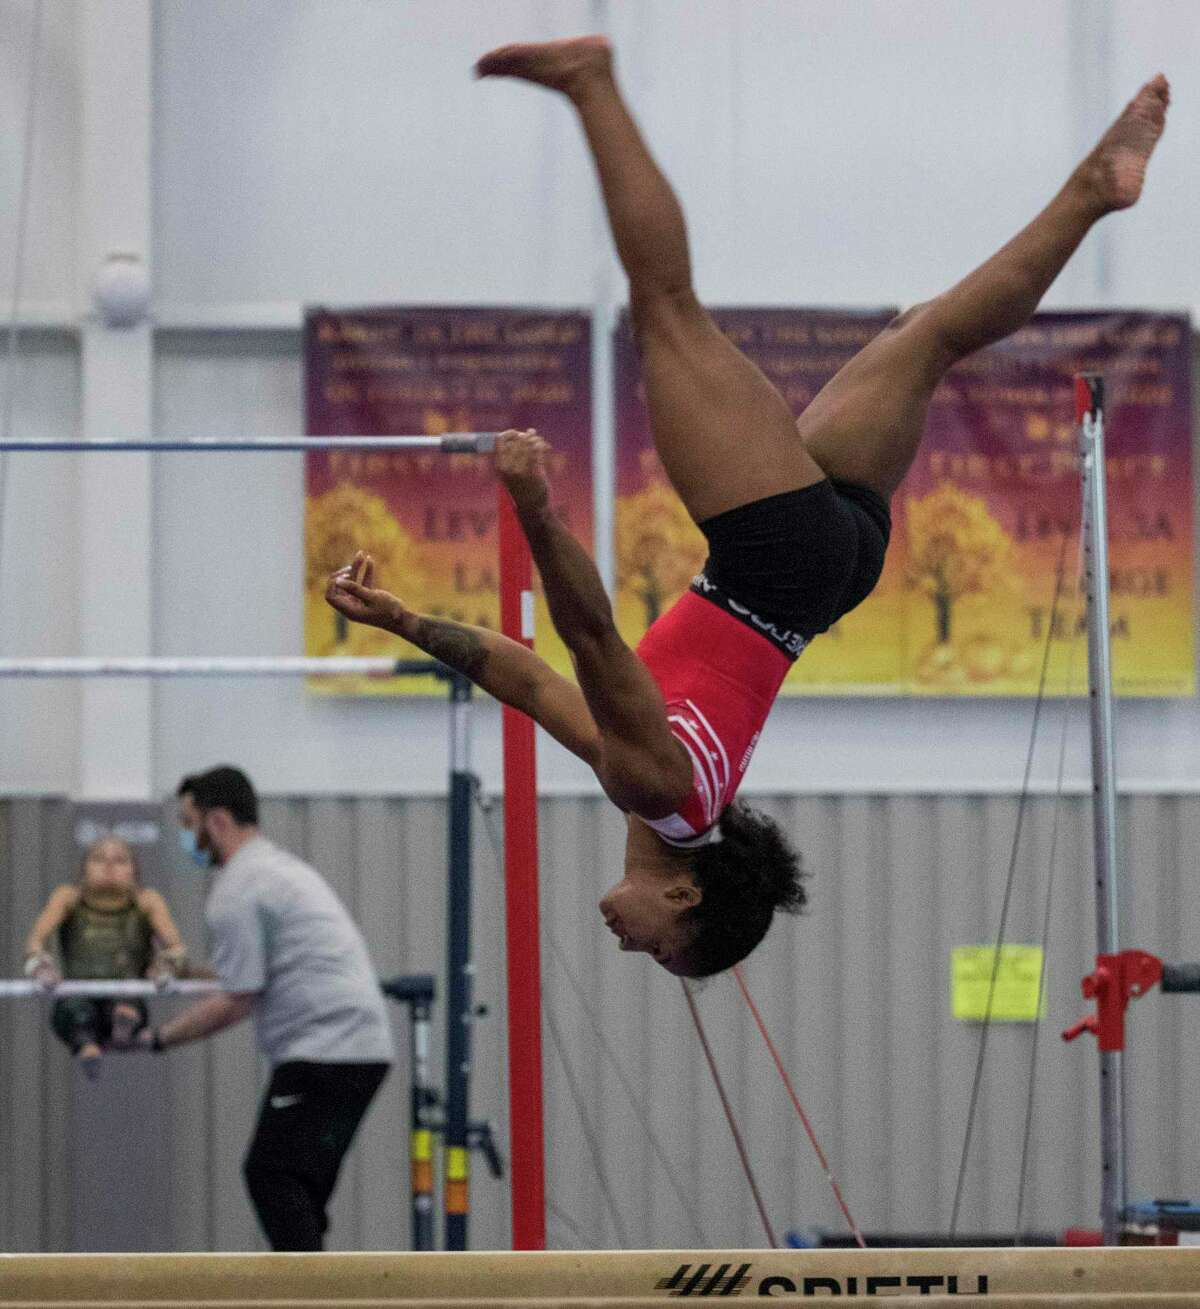 Olympic gymnast Jordan Chiles works on the balance beam as she prepares for the upcoming Tokyo Olympics at World Champions Centre Tuesday, July 6, 2021 in Spring.